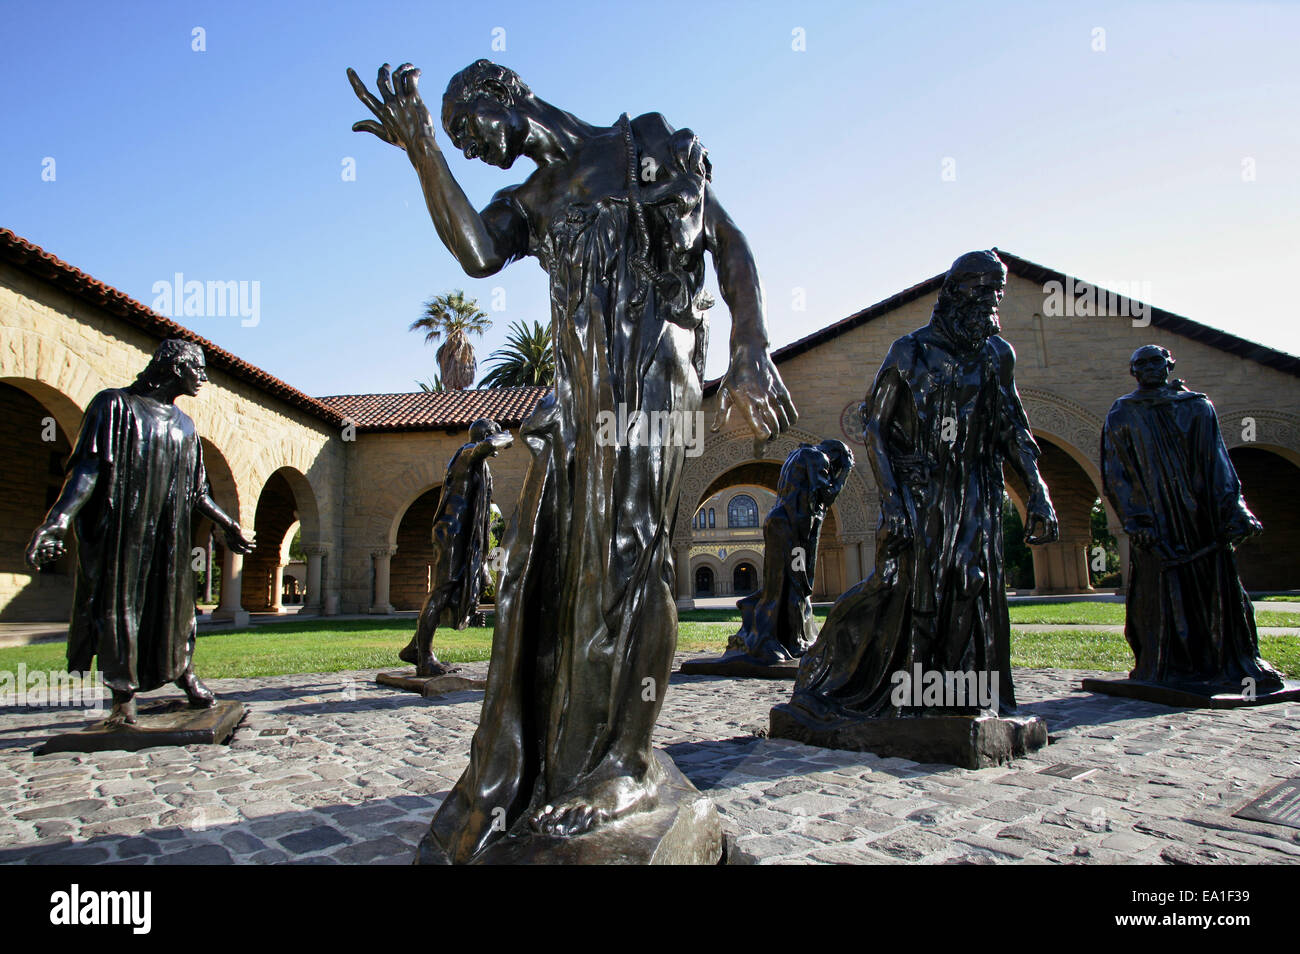 Stock Photo The Burghers Of Calais Bronze Sculptures By Auguste Rodin At Stanford 75021837 on Silicon Symbol Stock